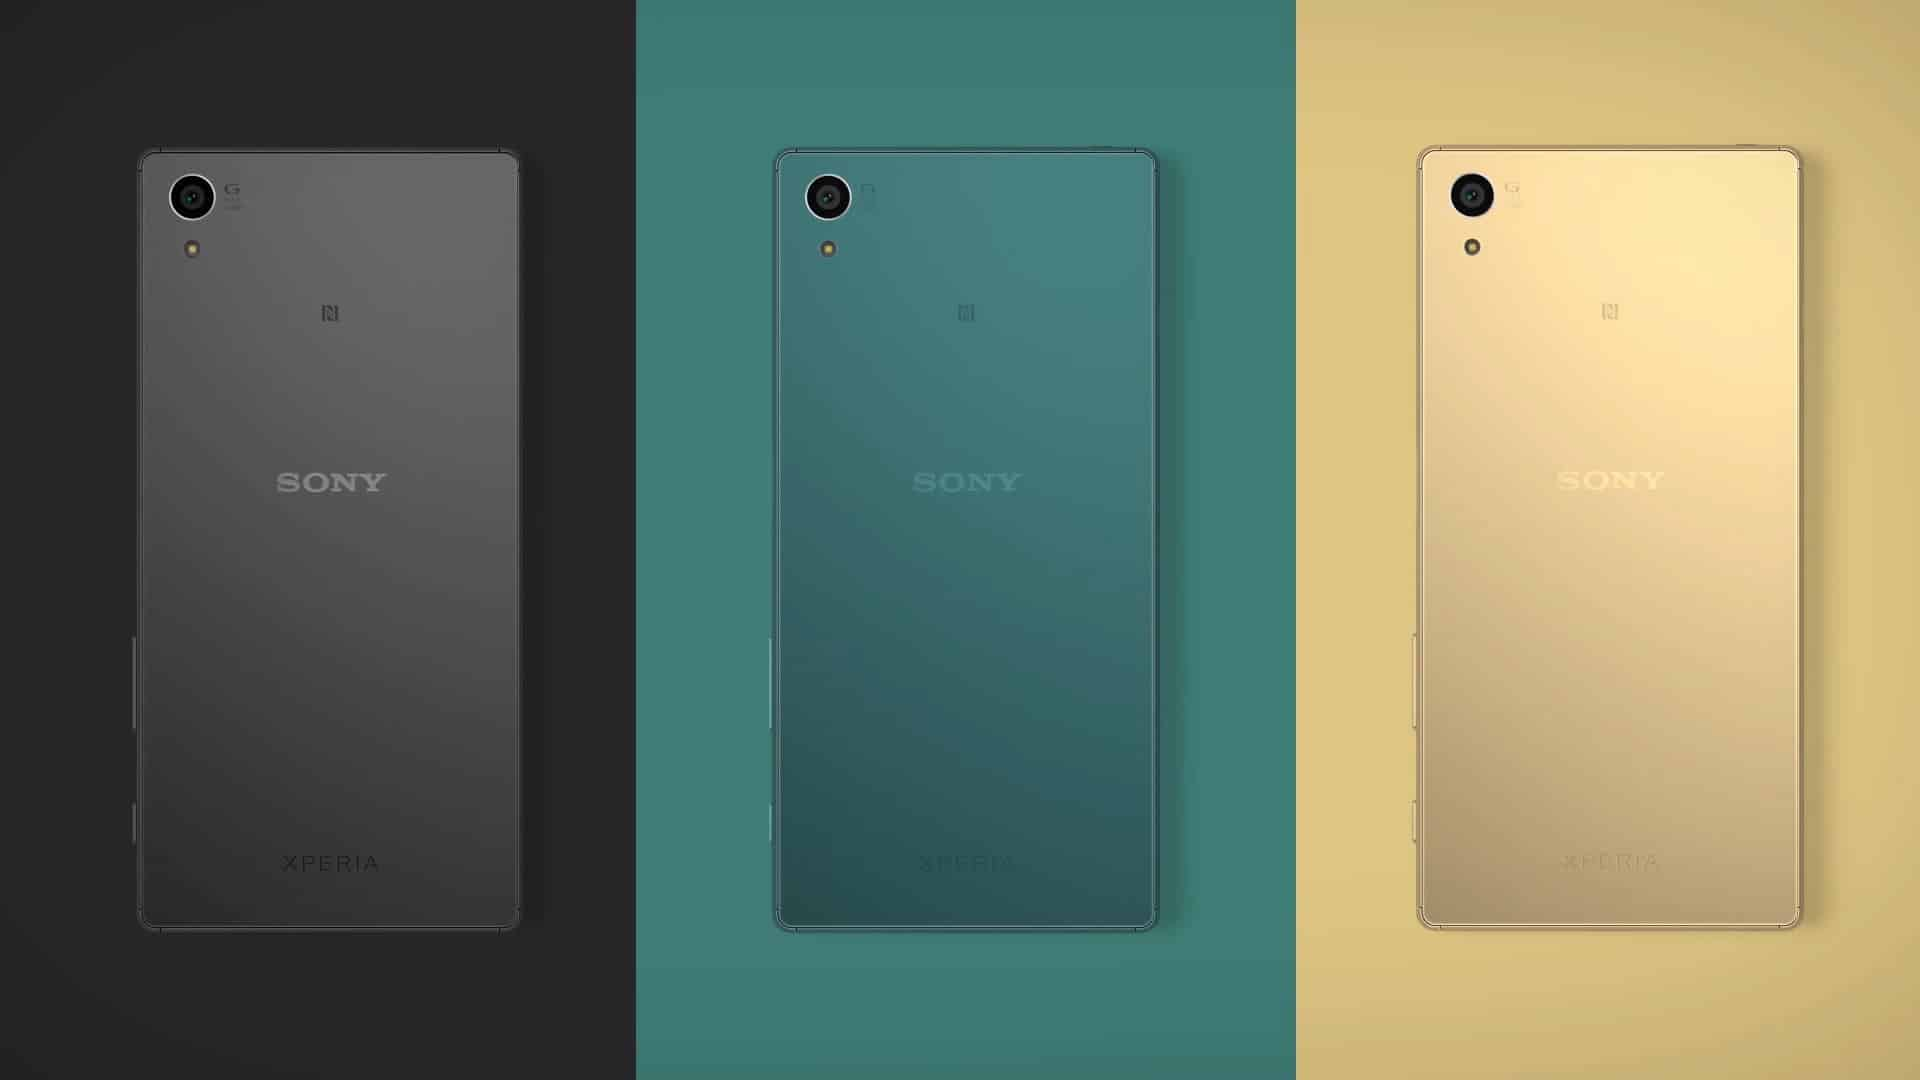 sony xperia z5. as had been announced, today was the way in which sony would be unveiling their latest xperia line smartphones and that\u0027s exactly what they have now done. z5